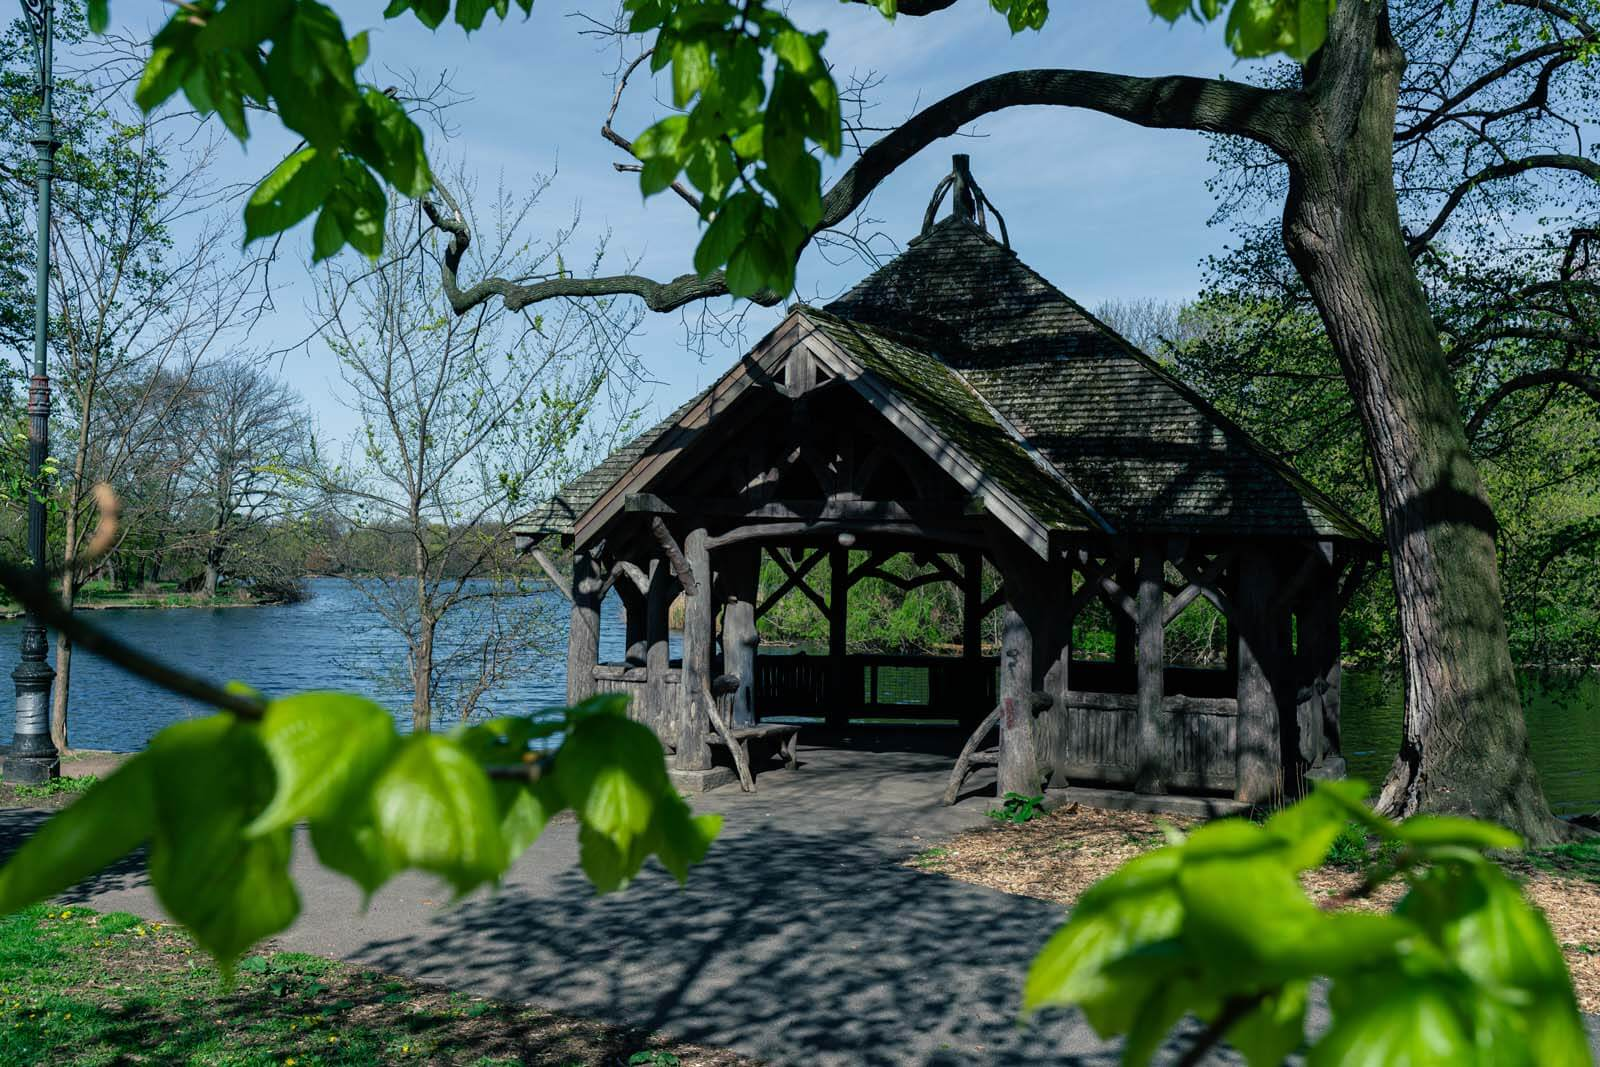 cool wooden shelter in prospect park on lake